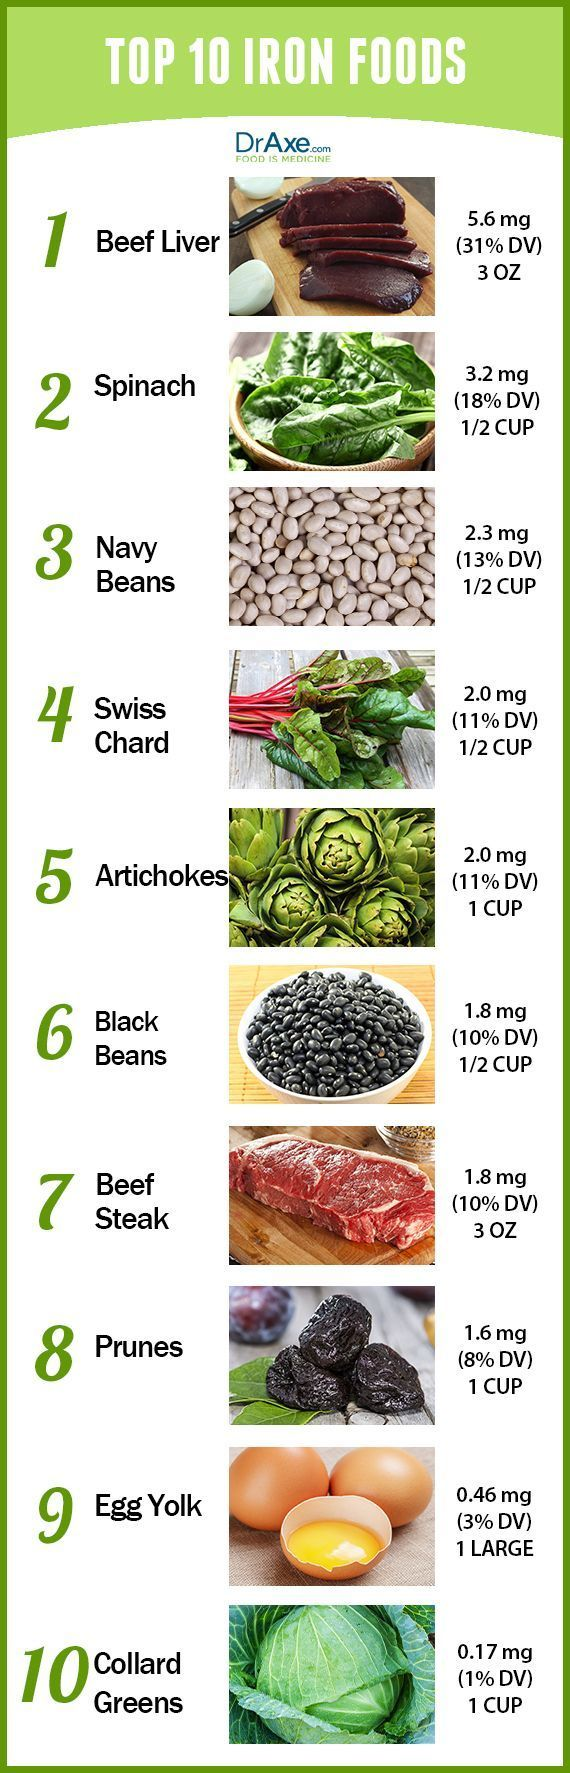 "TOP 10 IRON RICH FOODS - The benefits of iron include healthy hair and skin, increased energy, and a healthy pregnancy. Try these Top 10 Iron Rich Foods to get your daily dose! - <a href="""" rel=""nofollow"" target=""_blank"">...</a>"